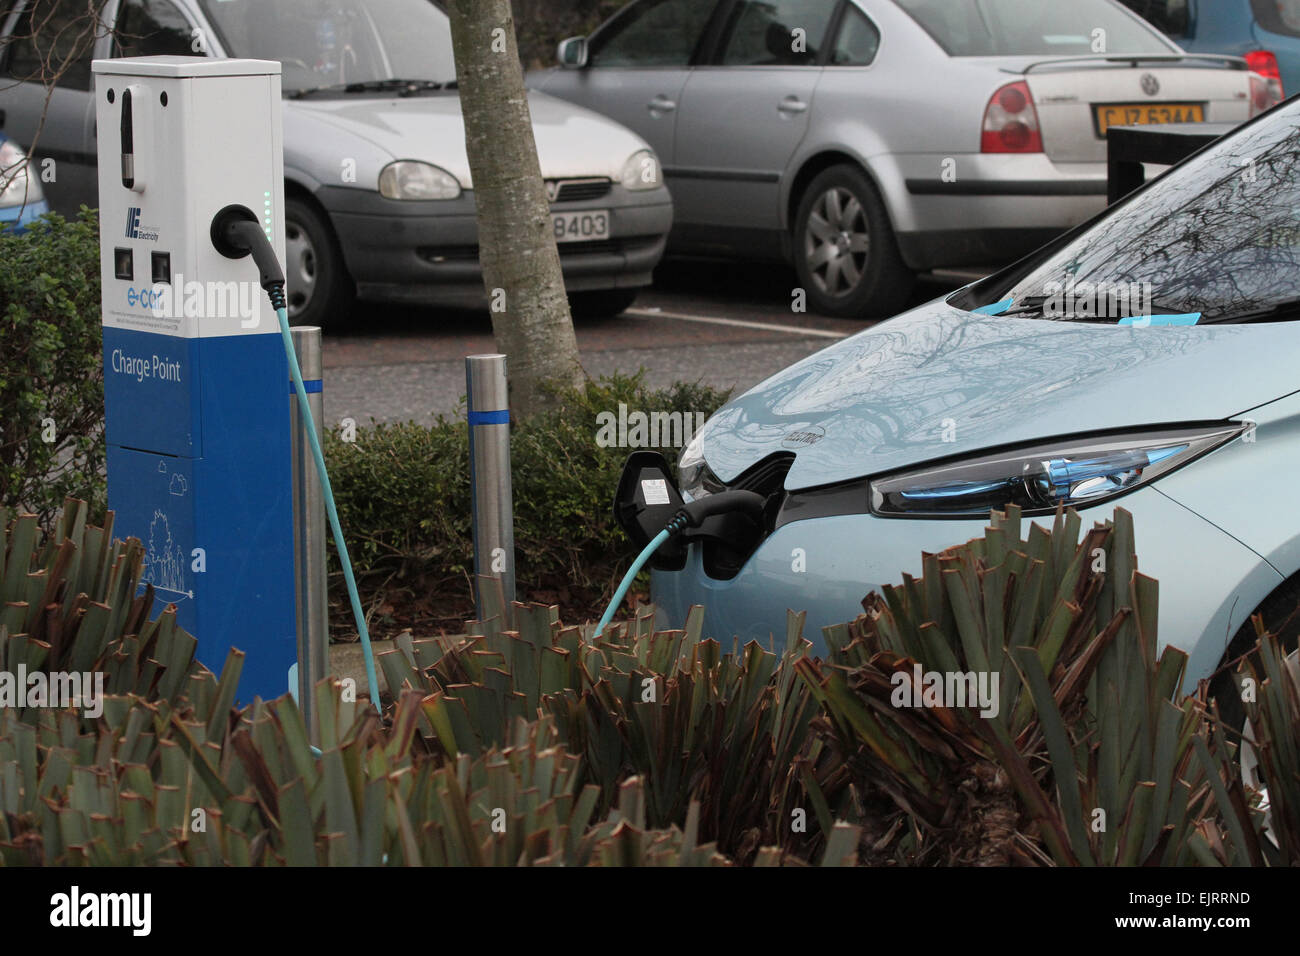 Electric car being charged at charge point - Stock Image